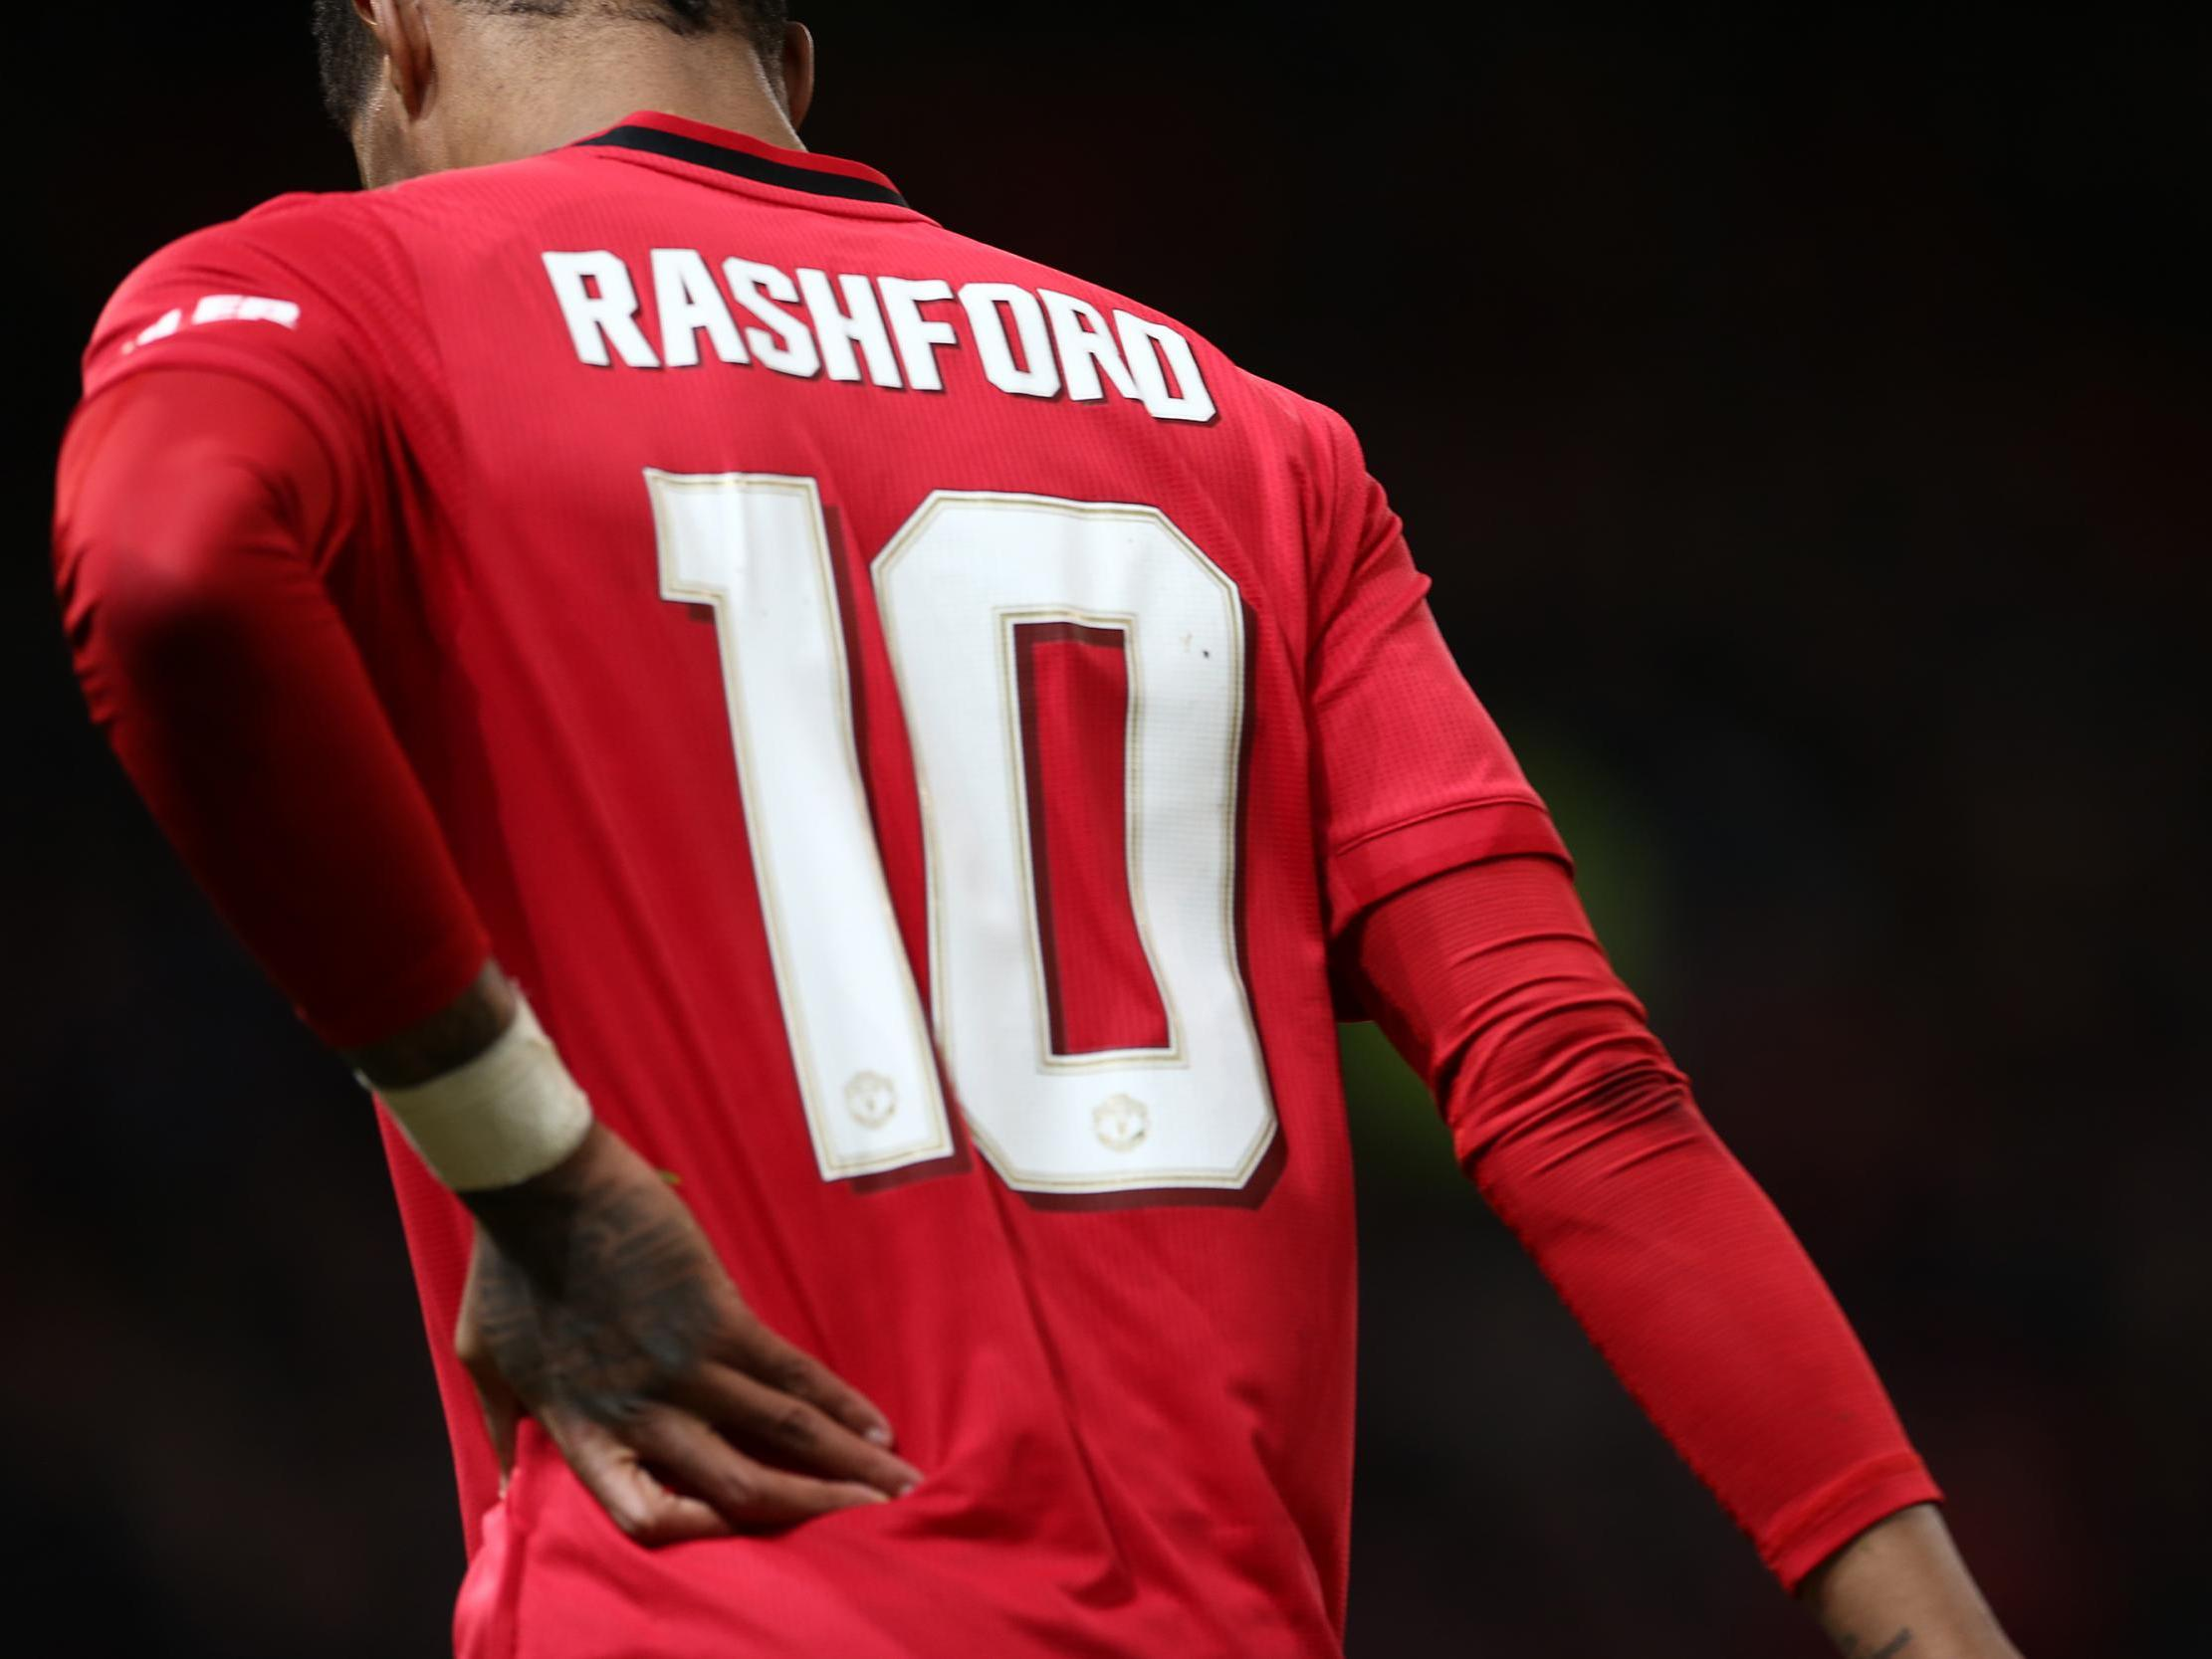 Marcus Rashford injury: Manchester United manager Ole Gunnar Solskjaer admits substitution 'backfired'